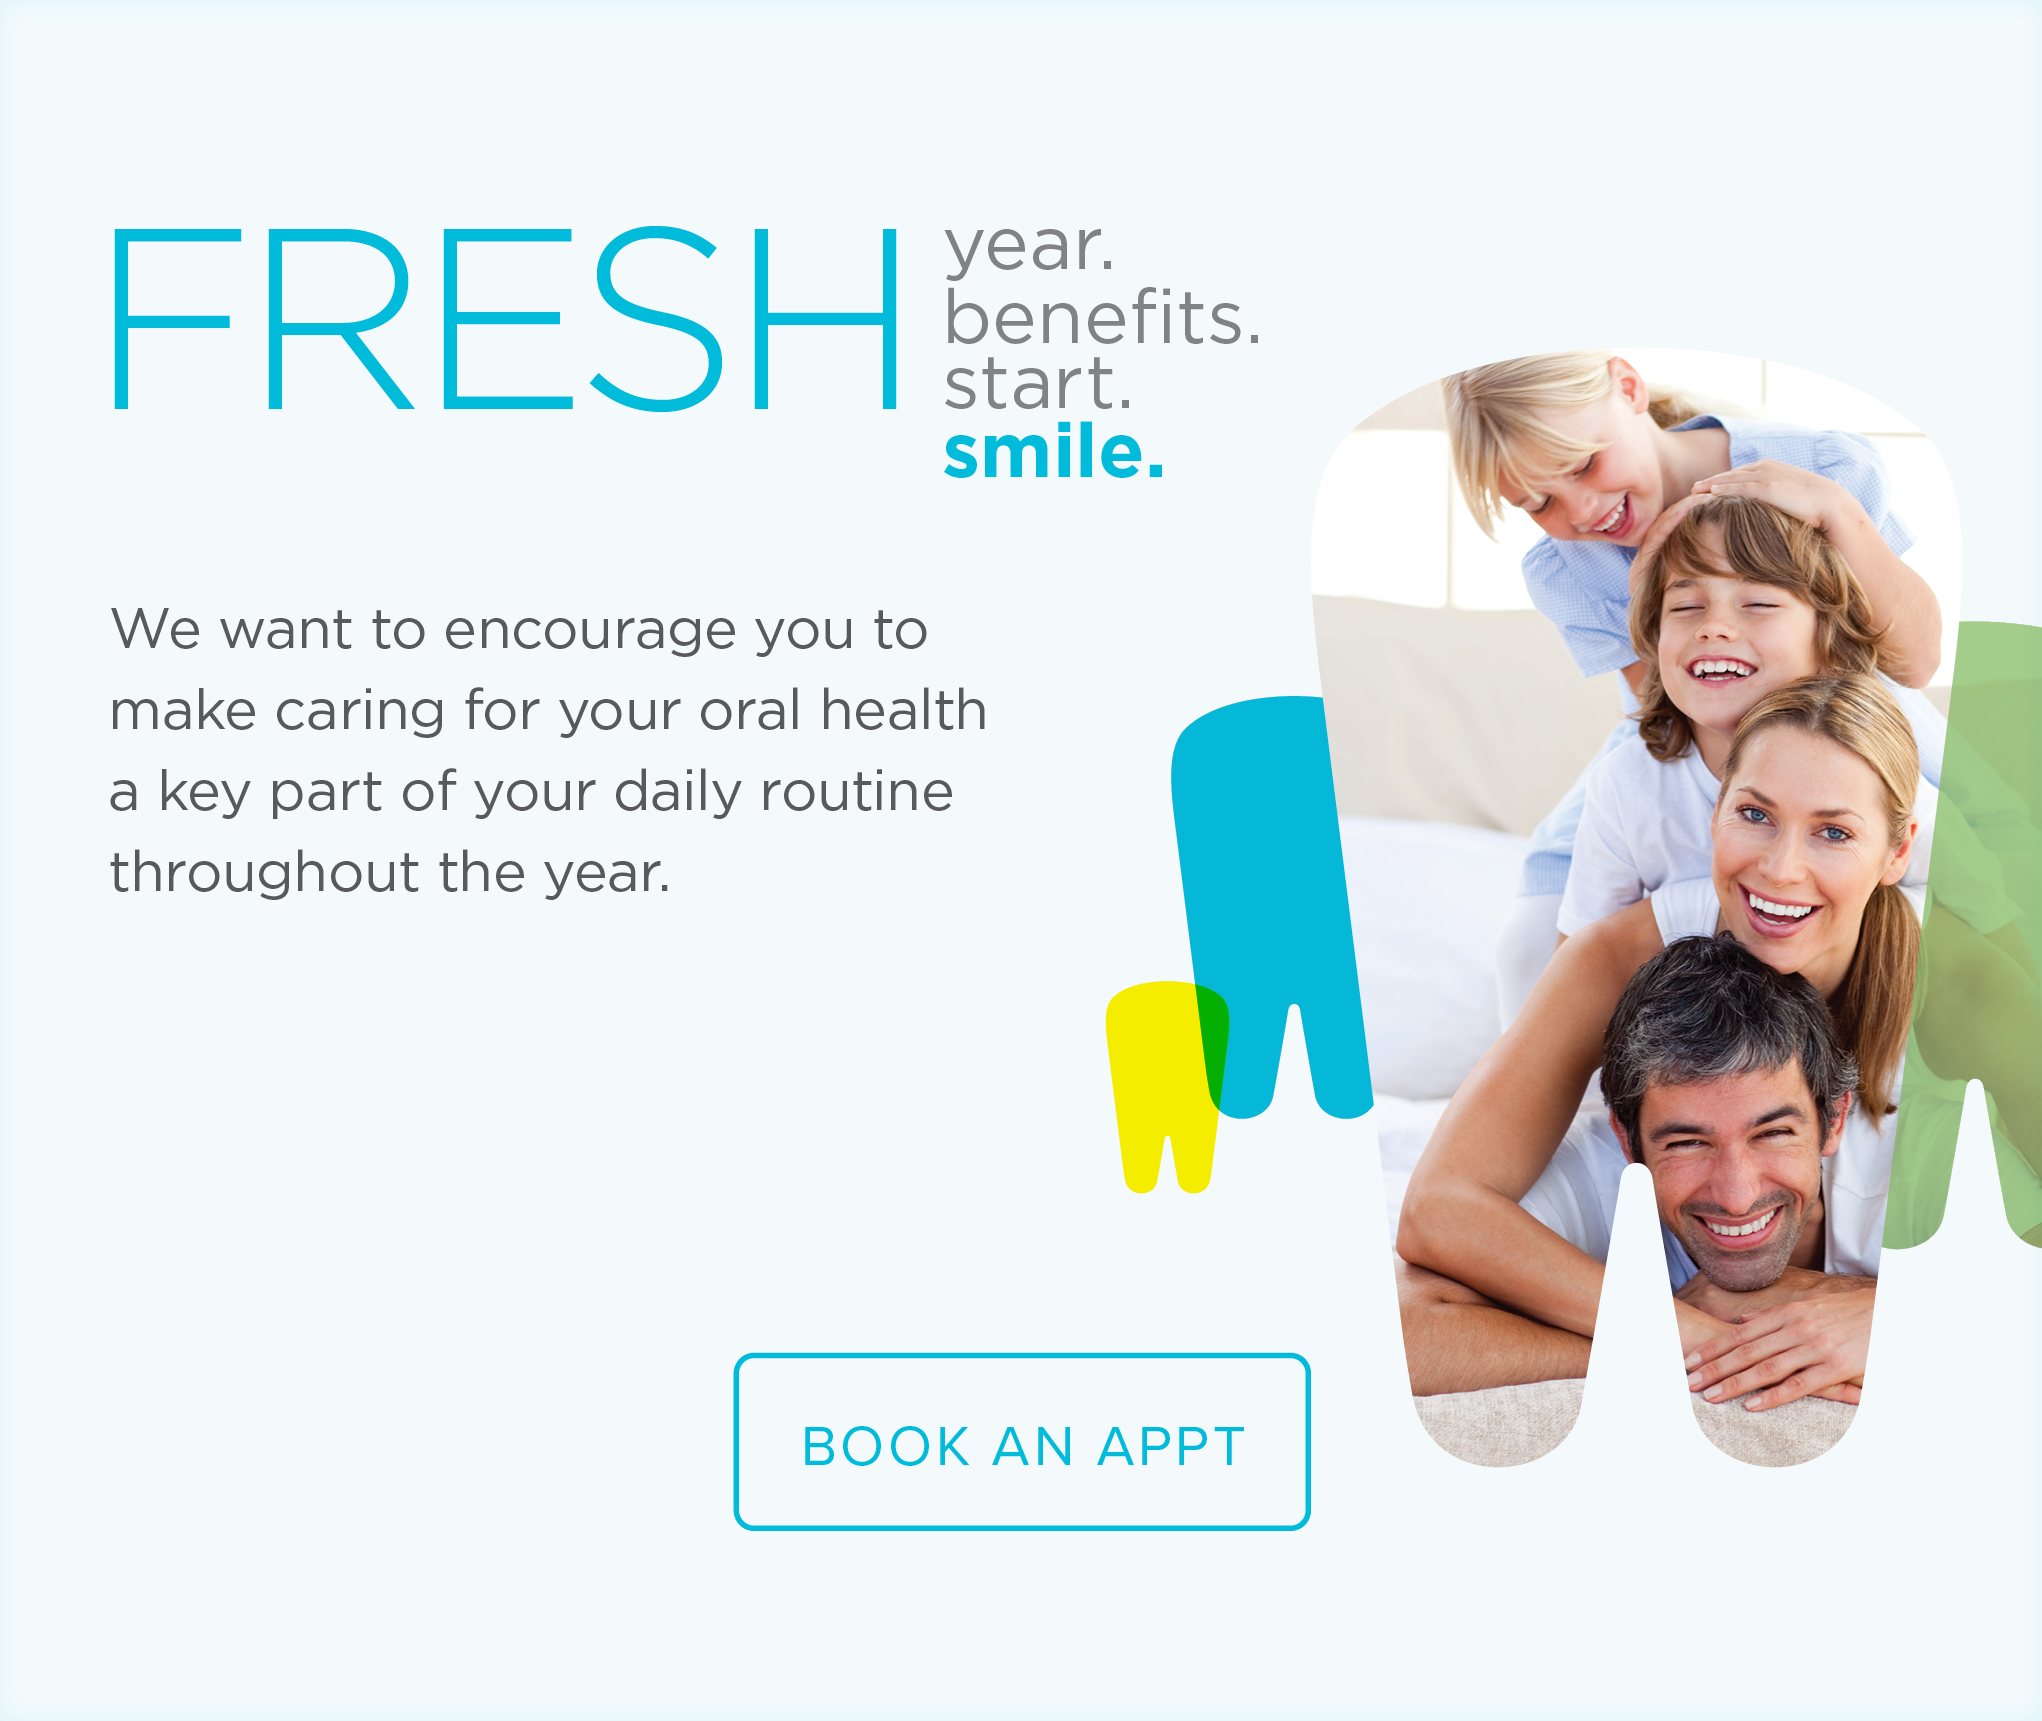 Laguna Beach Dental Group - Make the Most of Your Benefits